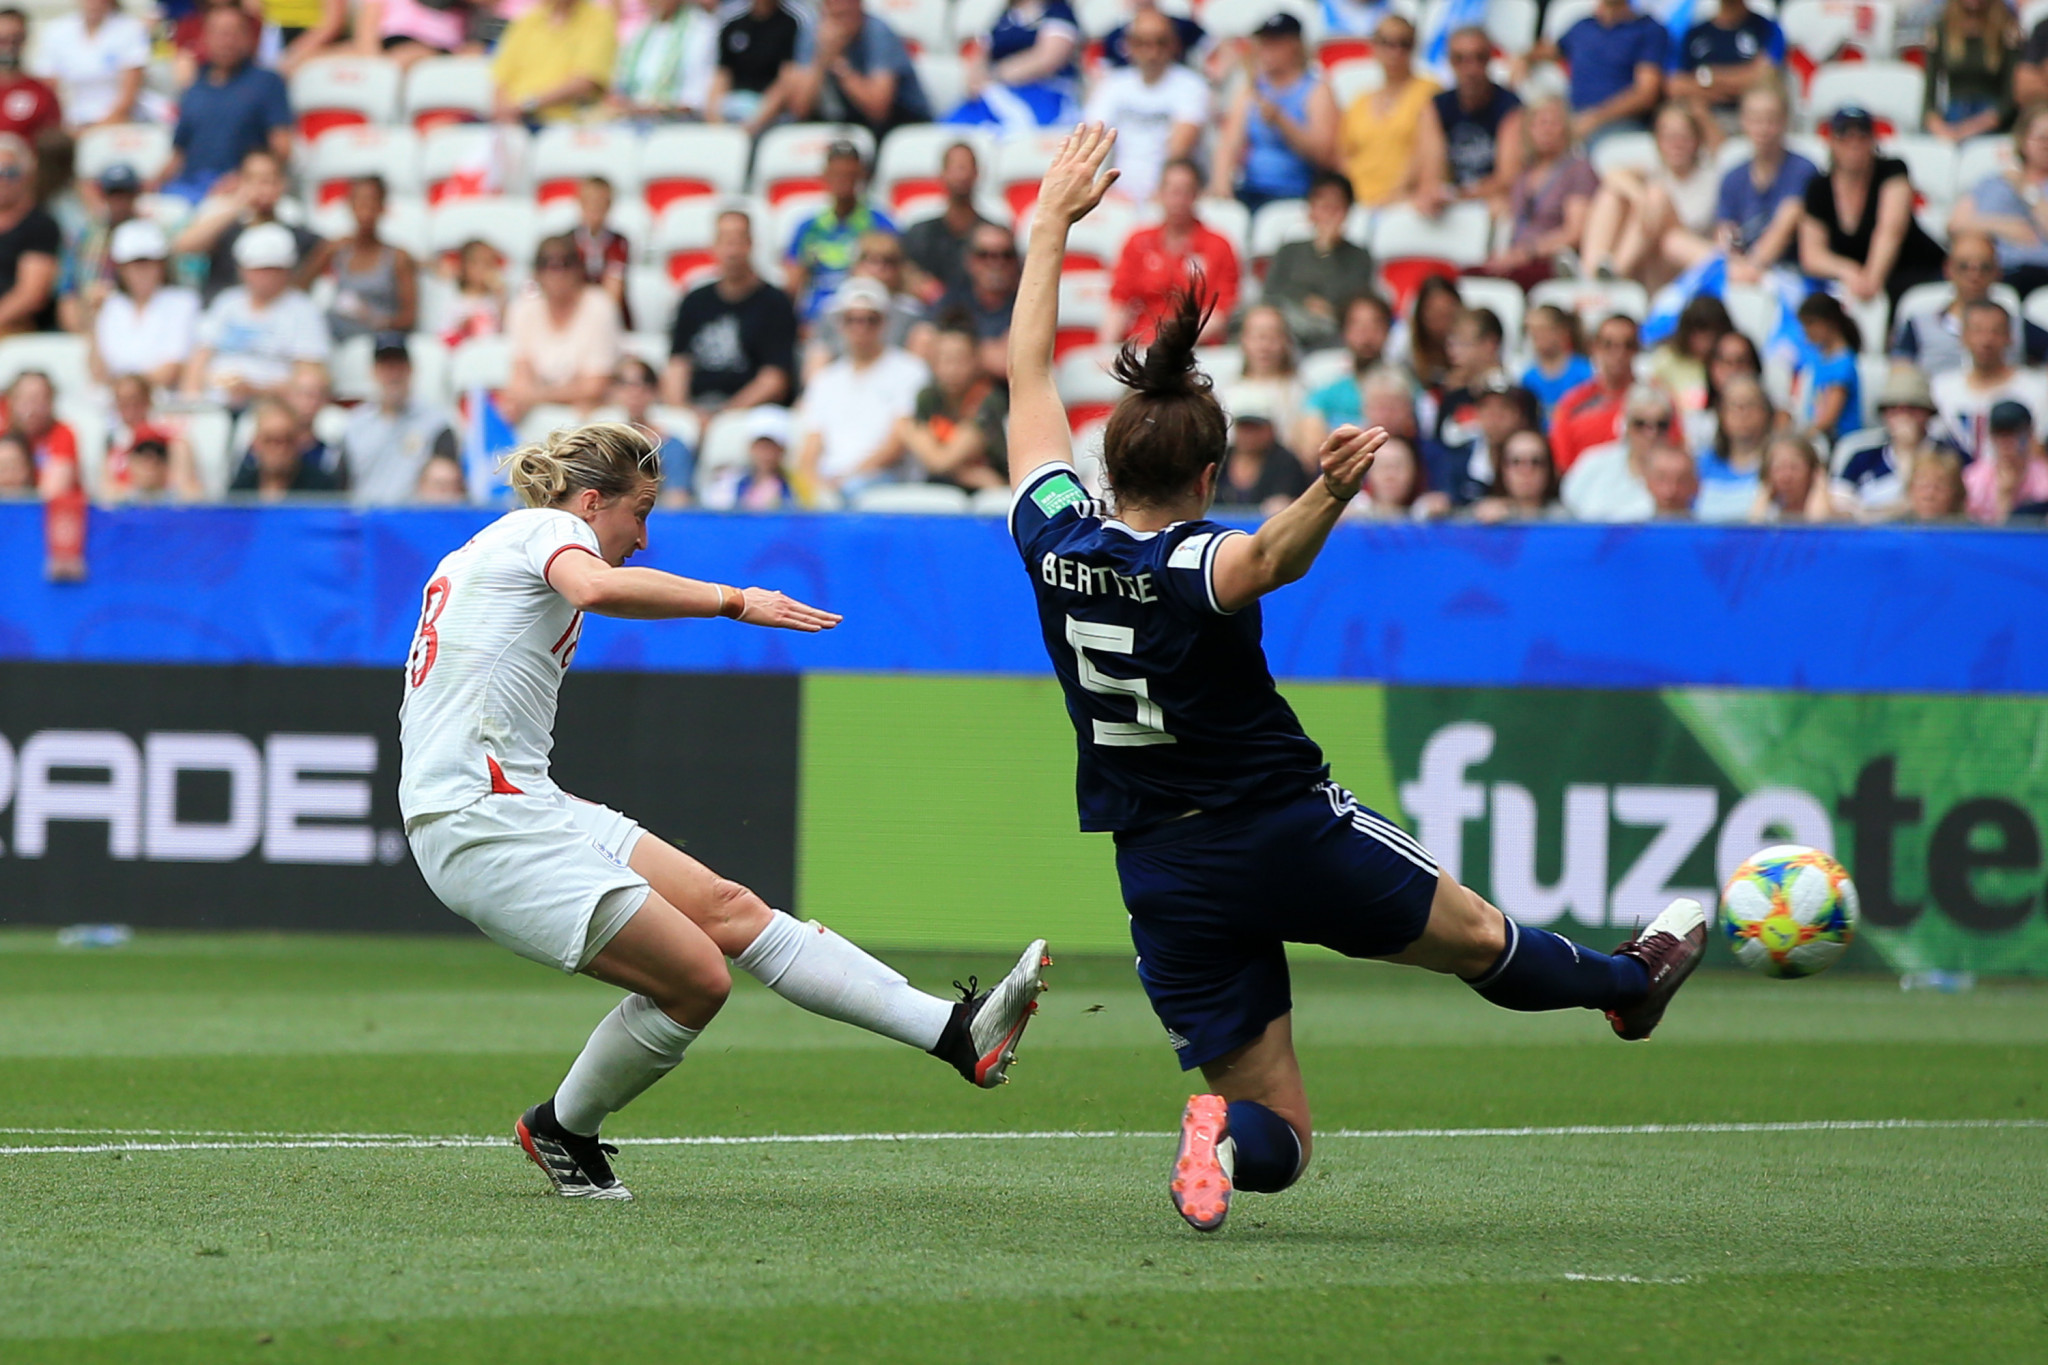 Ellen White, having previously been denied a goal by the offside flag, pounced on a loose ball to curl in a second for England ©Getty Images